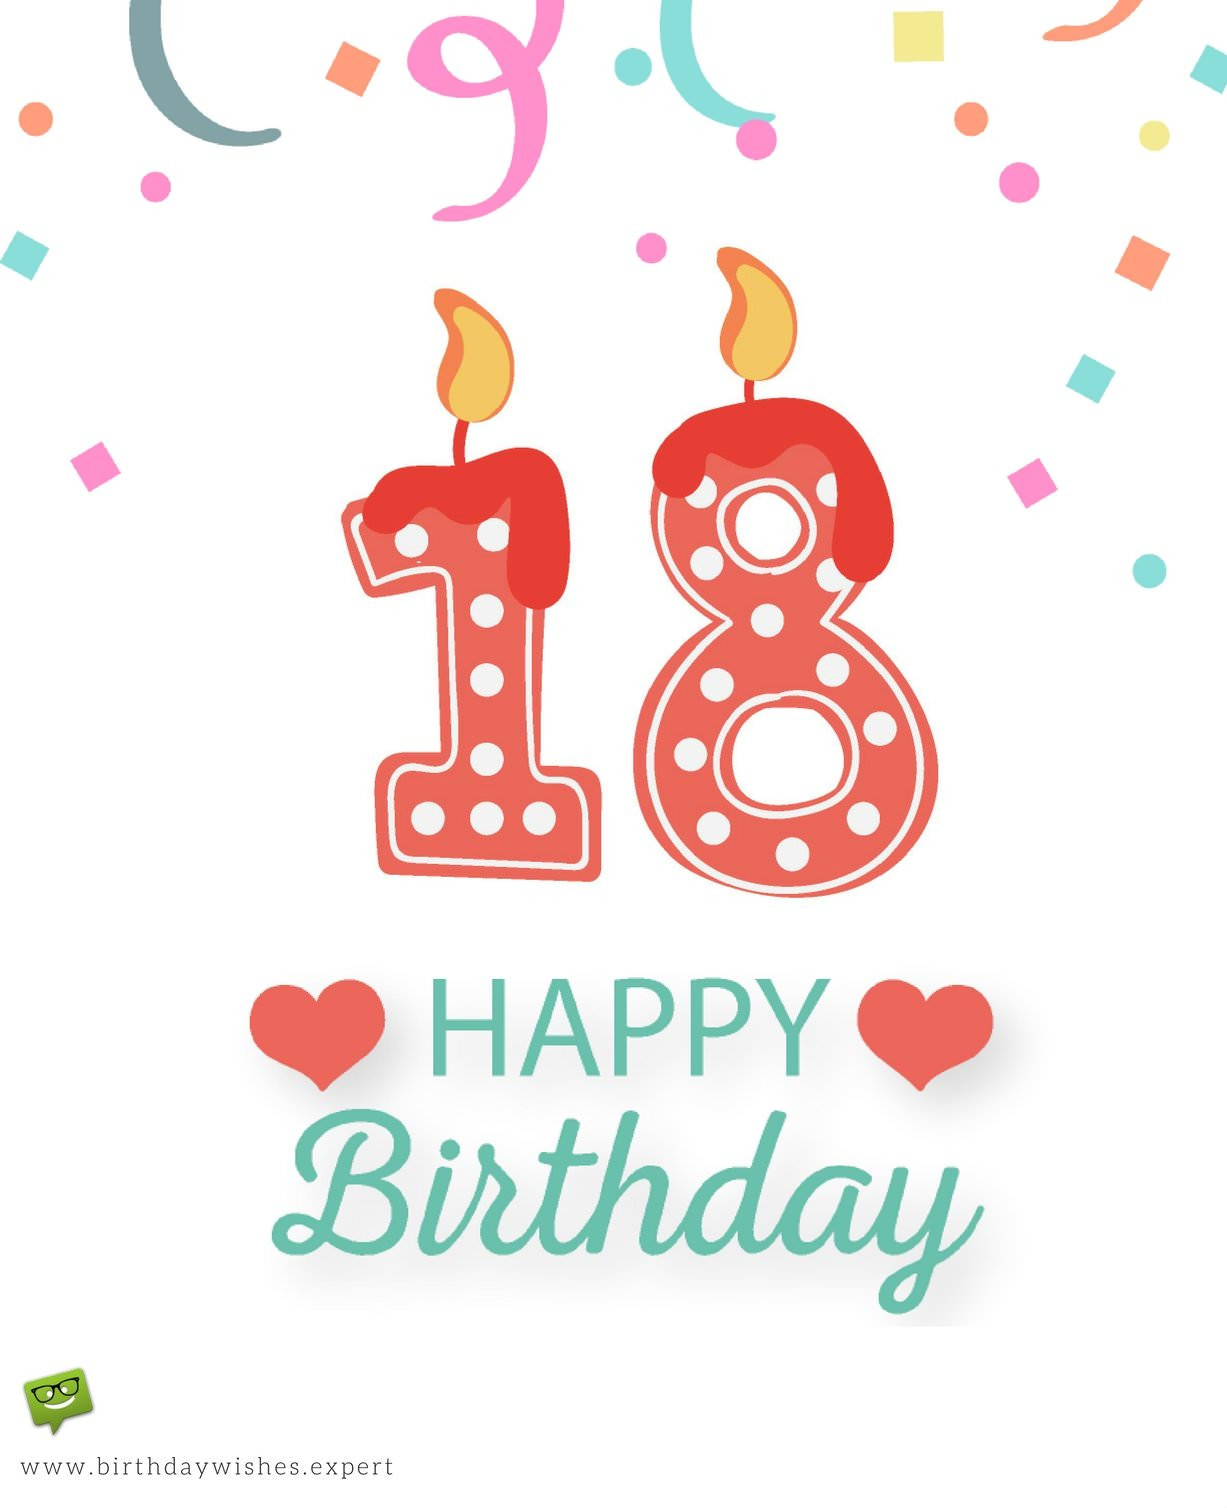 Best ideas about Birthday Wishes For 18 Year Old . Save or Pin 18th Birthday Wishes Now.